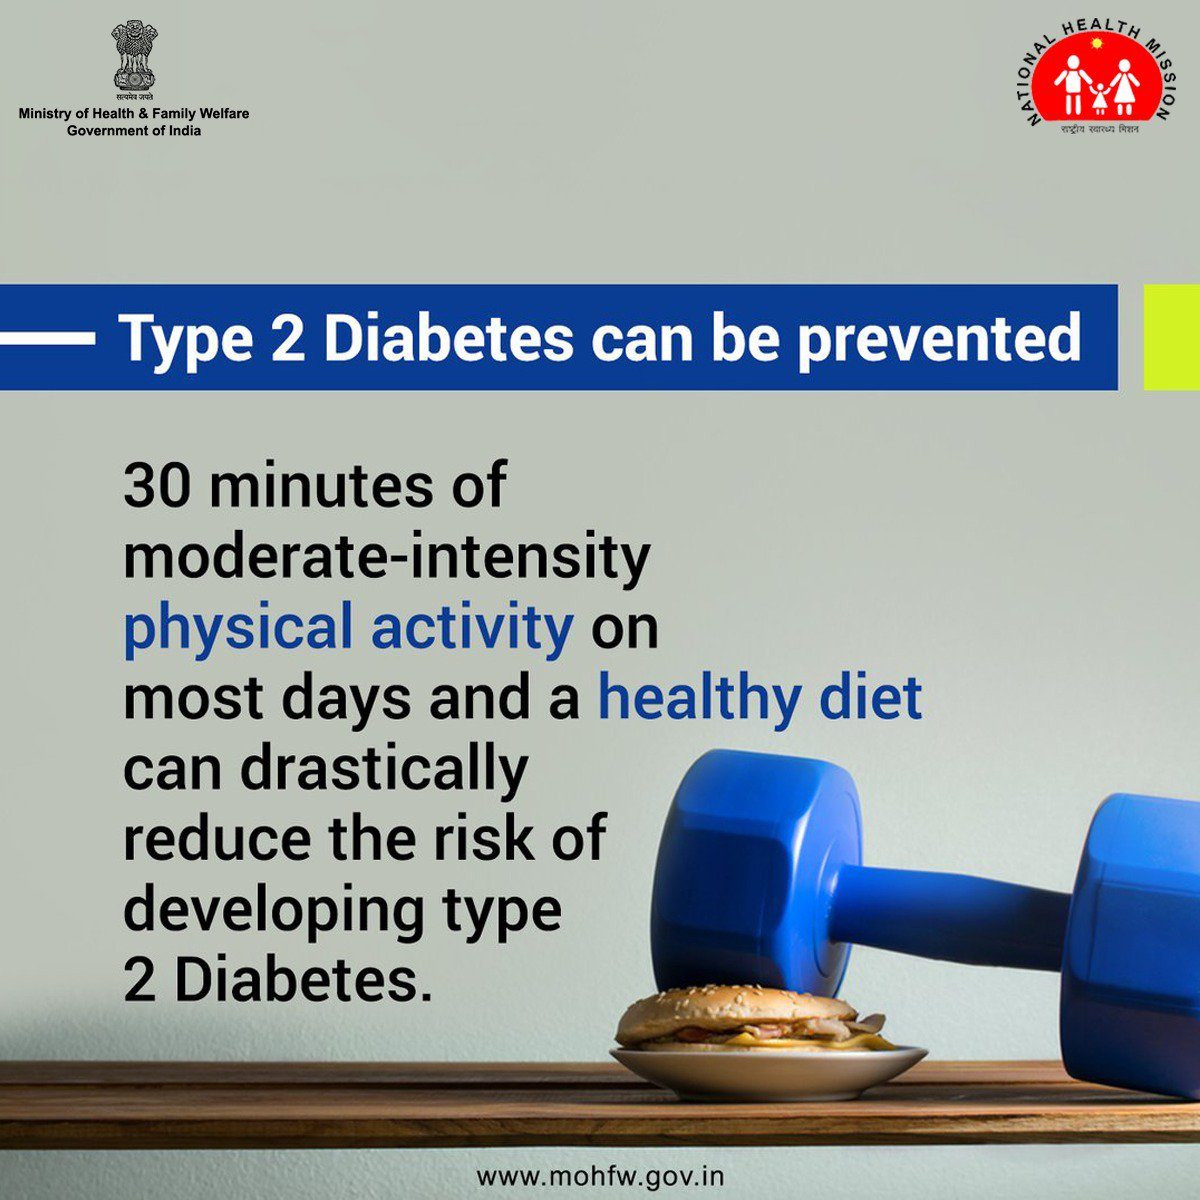 test Twitter Media - With type 2 #Diabetes, the body either doesn't produce enough #insulin, or it resists insulin. You can prevent it by self-care. https://t.co/78L7M1cq0y  #BeatNCDs #SwasthaBharat @PMOIndia @NITIAayog @PIB_India @amitabhk87 https://t.co/WKx8y0ptT9